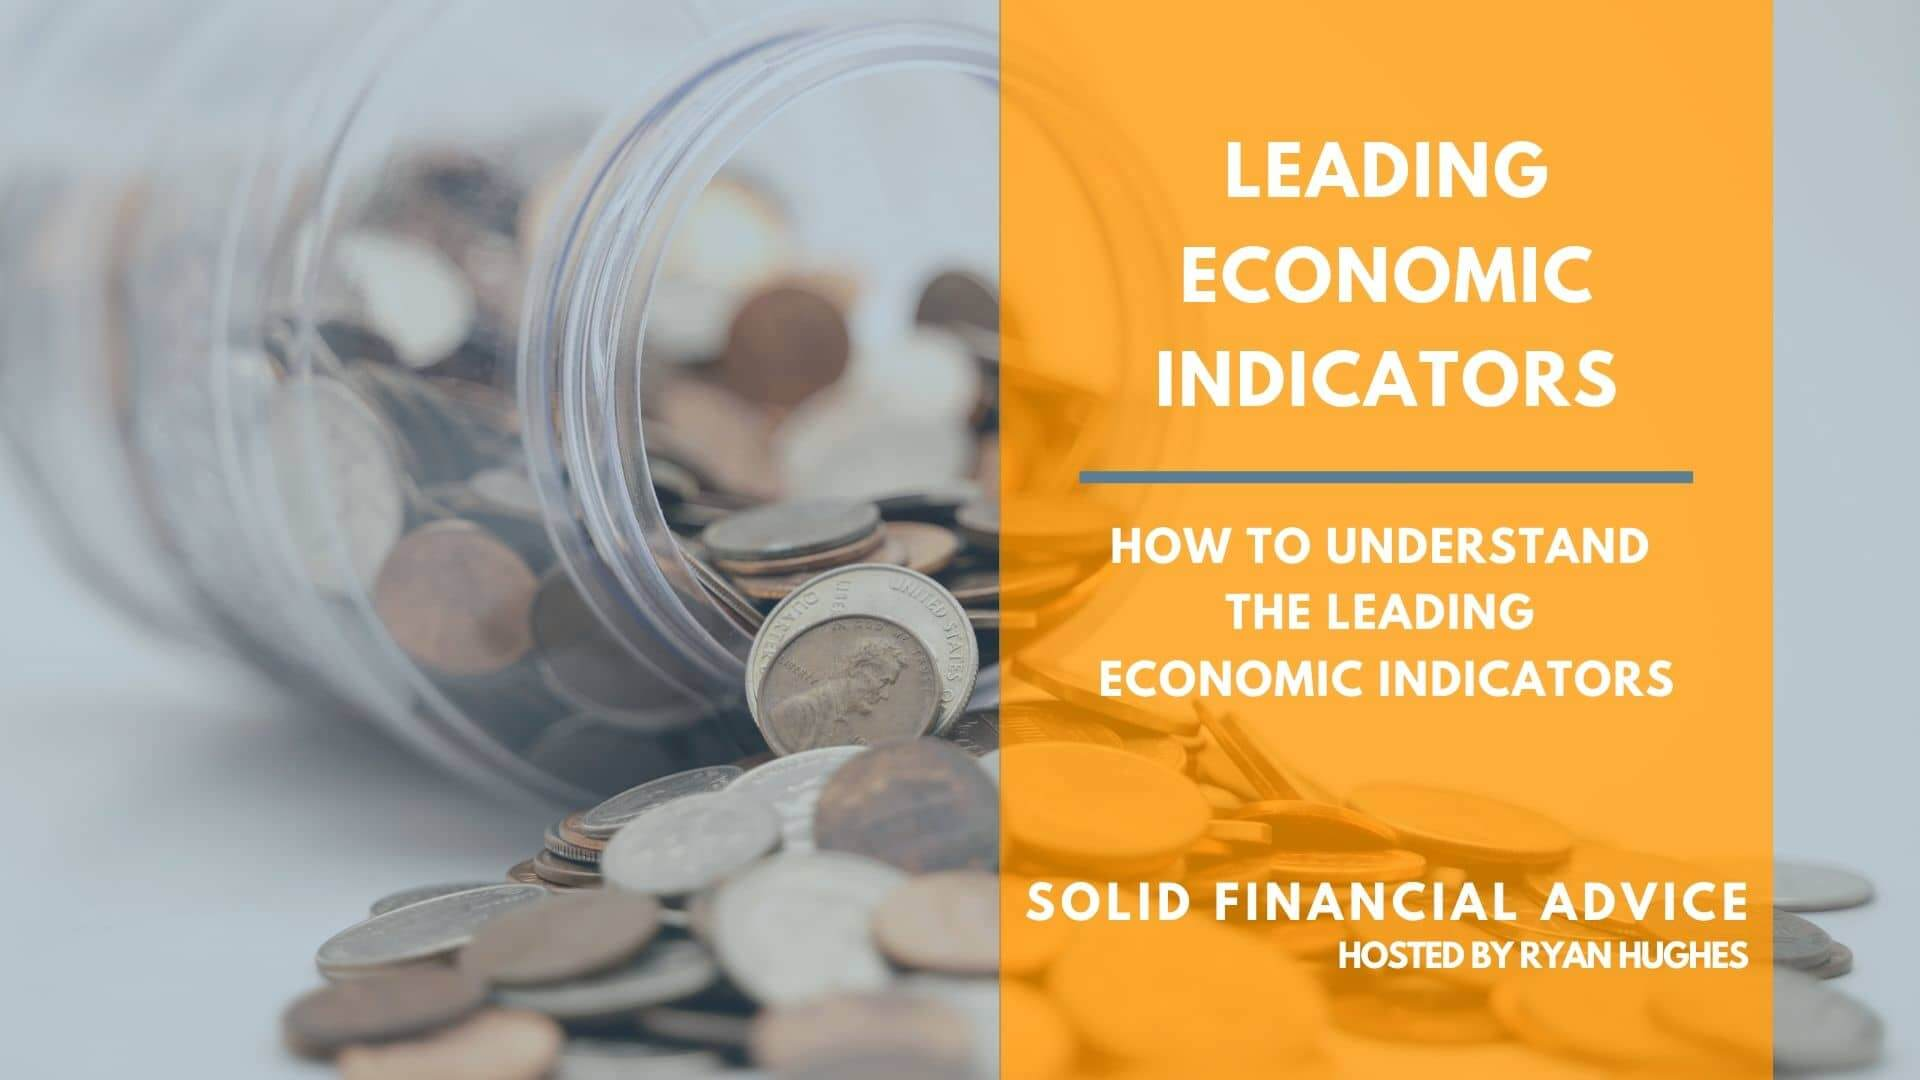 How To Understand The Leading Economic Indicators